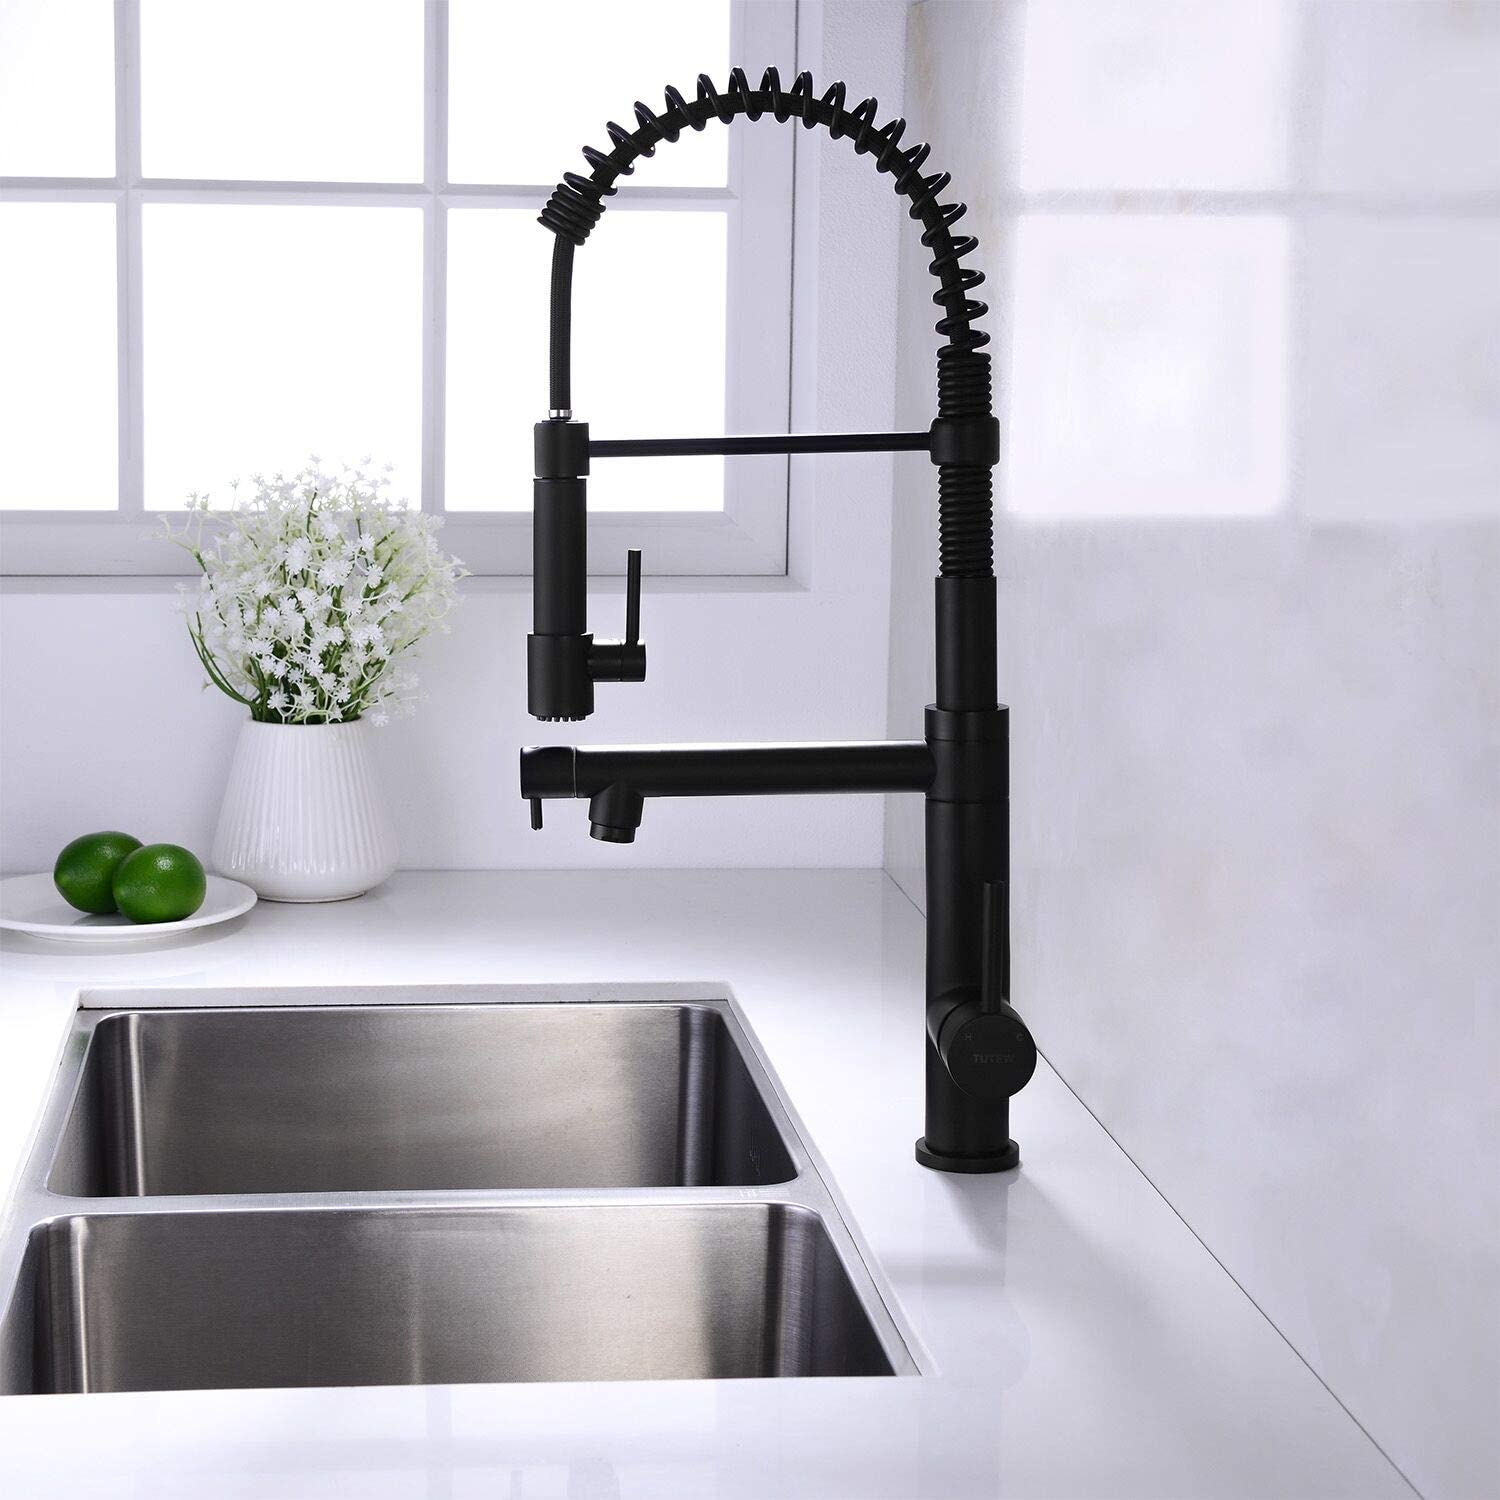 Tutew Kitchen Faucet Spring Kitchen Sink Faucet High Arc Kitchen Faucet With Sprayer Bass Pull Down Kitchen Faucet Black Kitchen Faucet Amazon Com